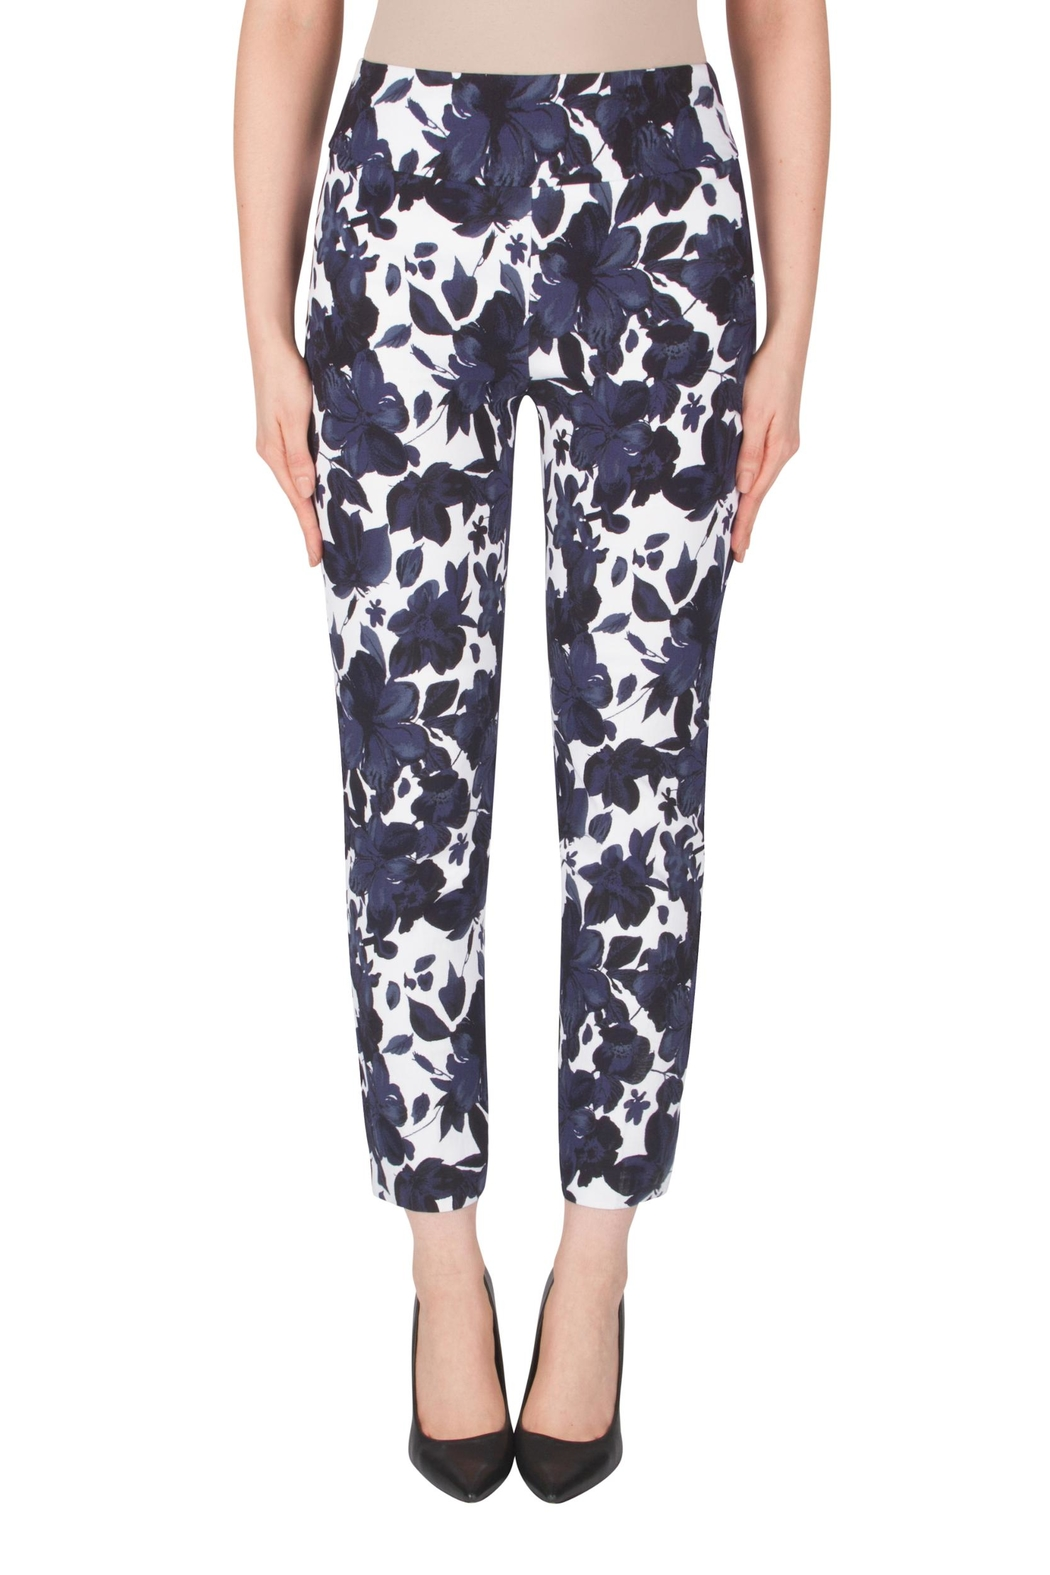 Joseph Ribkoff Fitted Floral Pant - Main Image